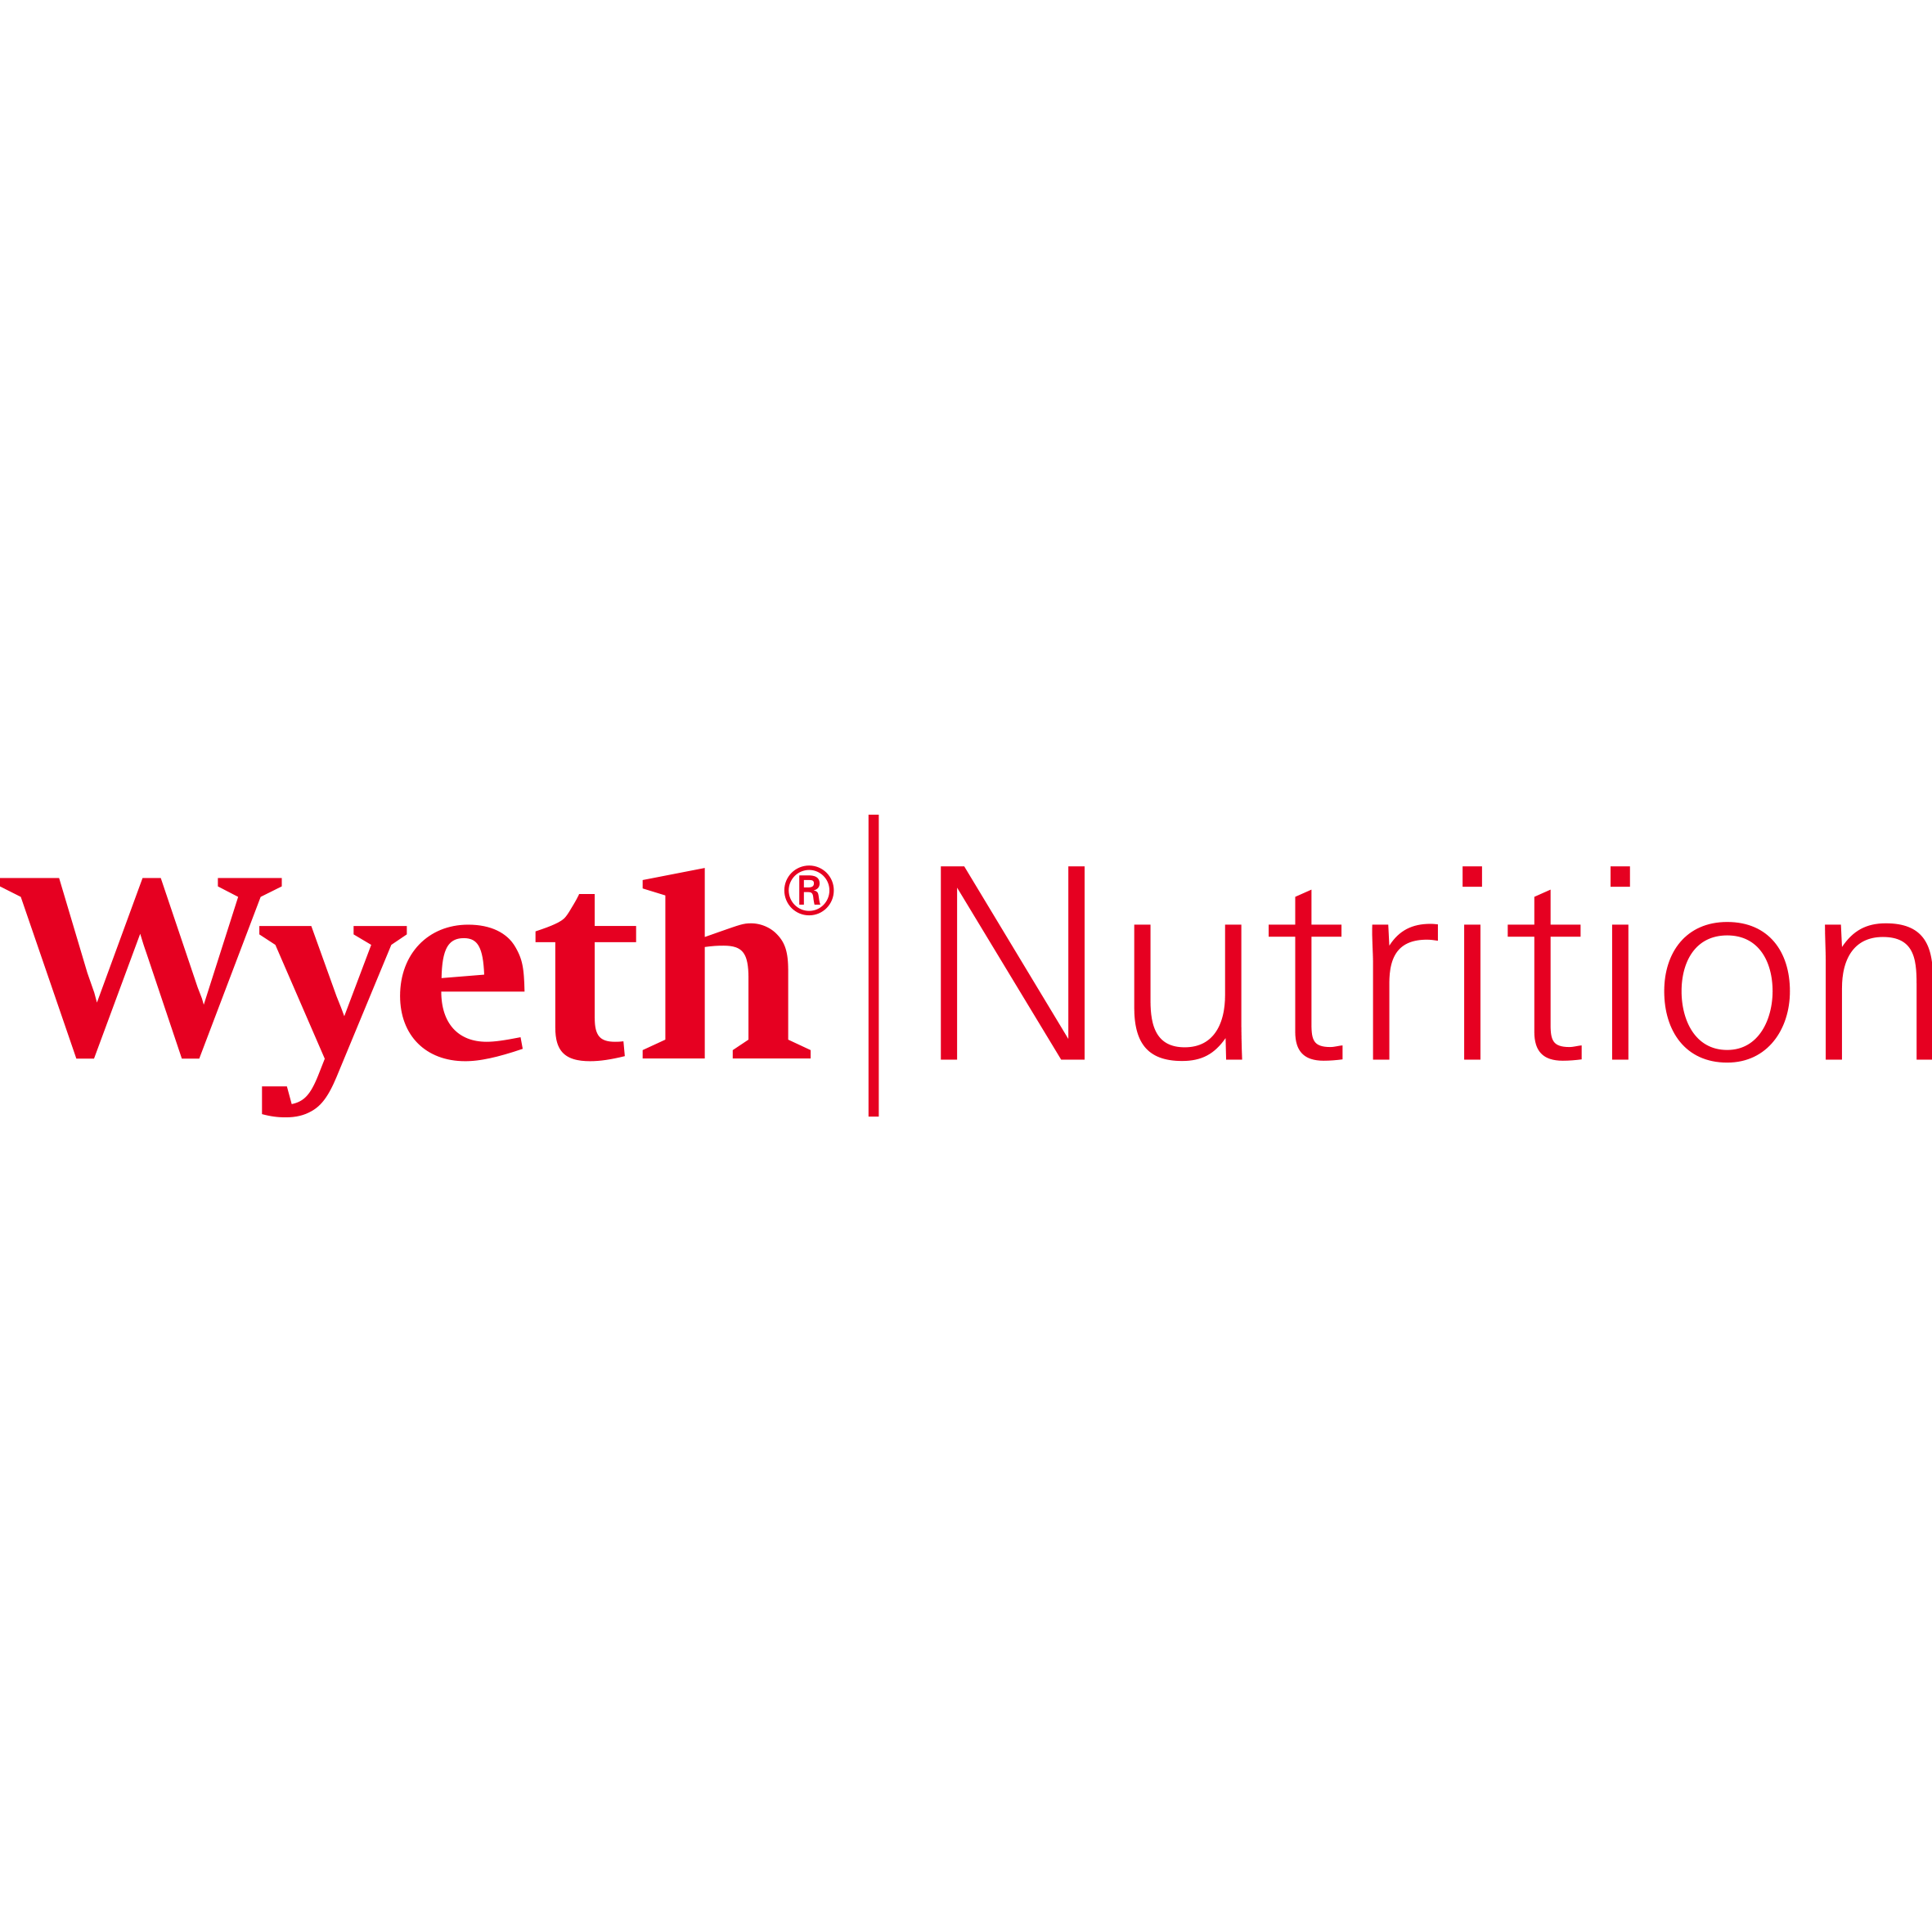 Wyeth Nutrition Hong Kong